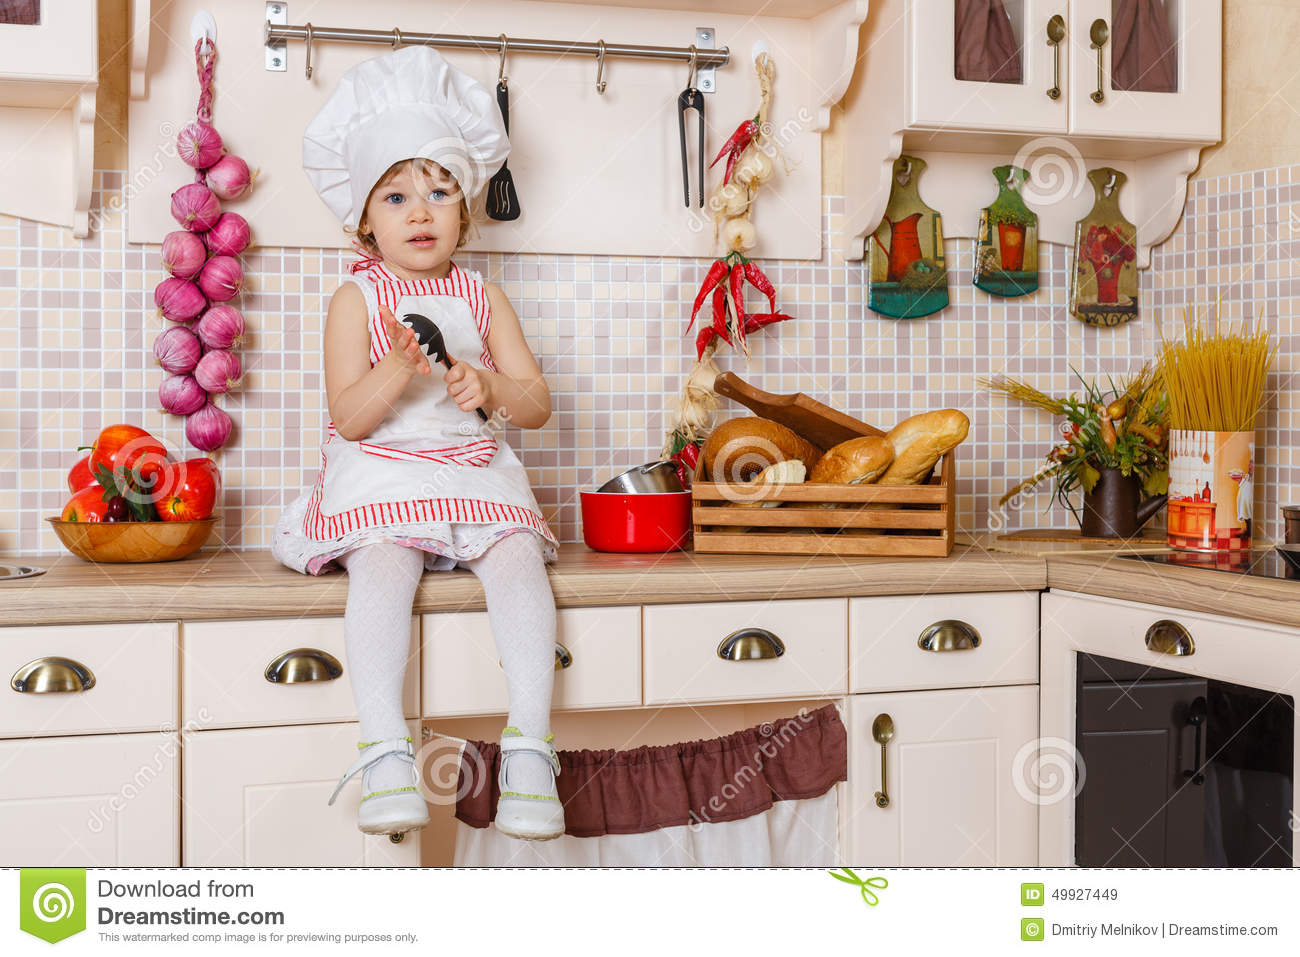 Little Girl In Apron In The Kitchen. Stock Image - Image of food ...